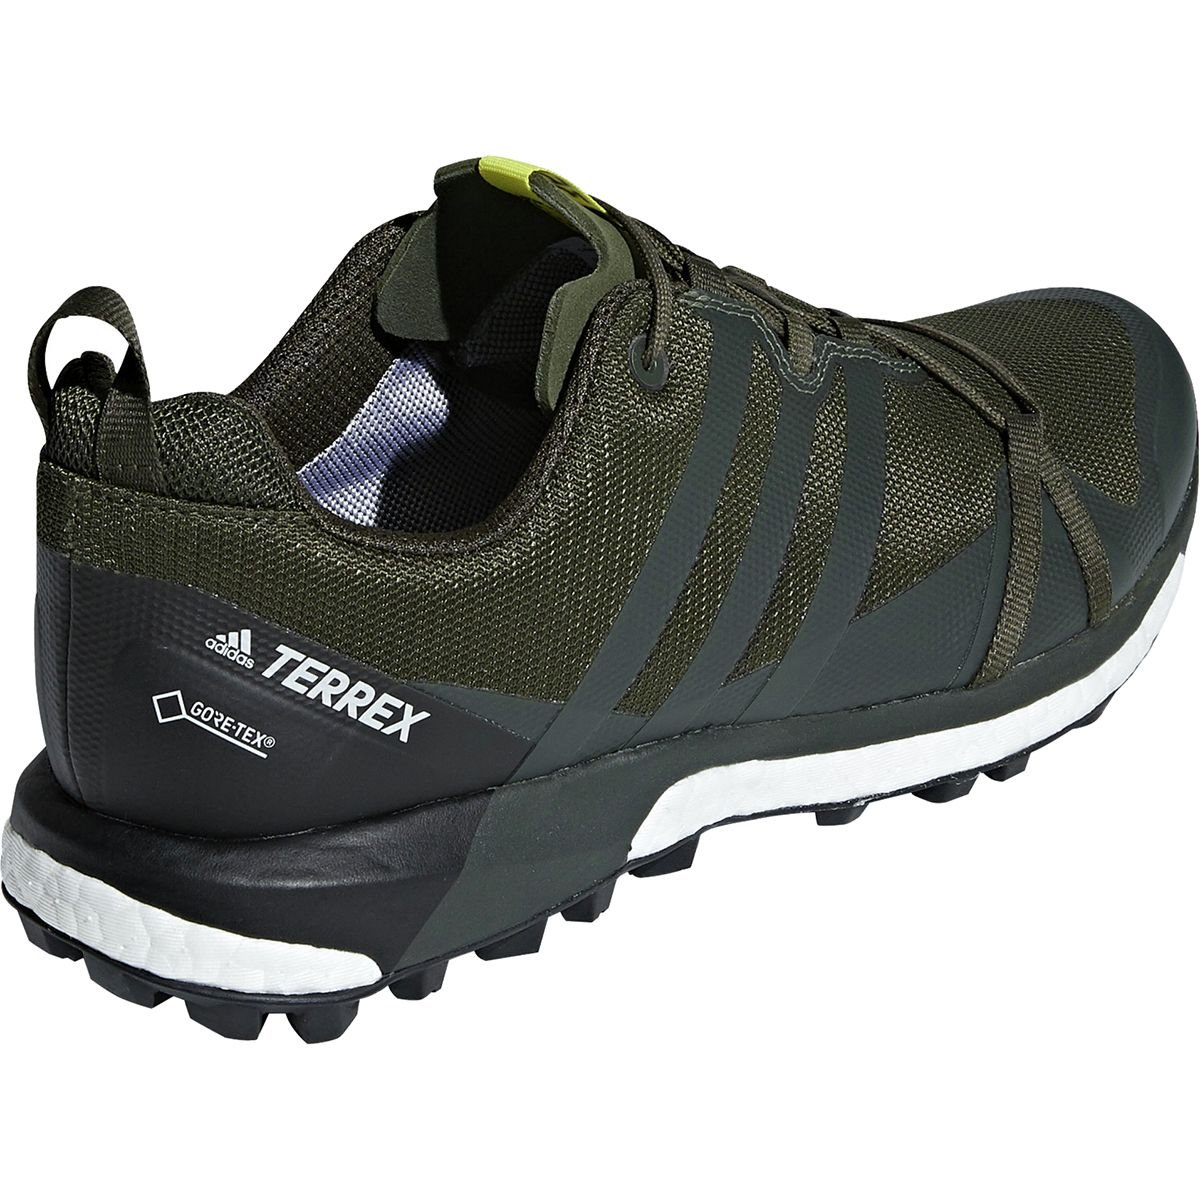 promo code f9bed 3a23b Amazon.com   adidas outdoor Mens Terrex Agravic GTX Shoe   Trail Running